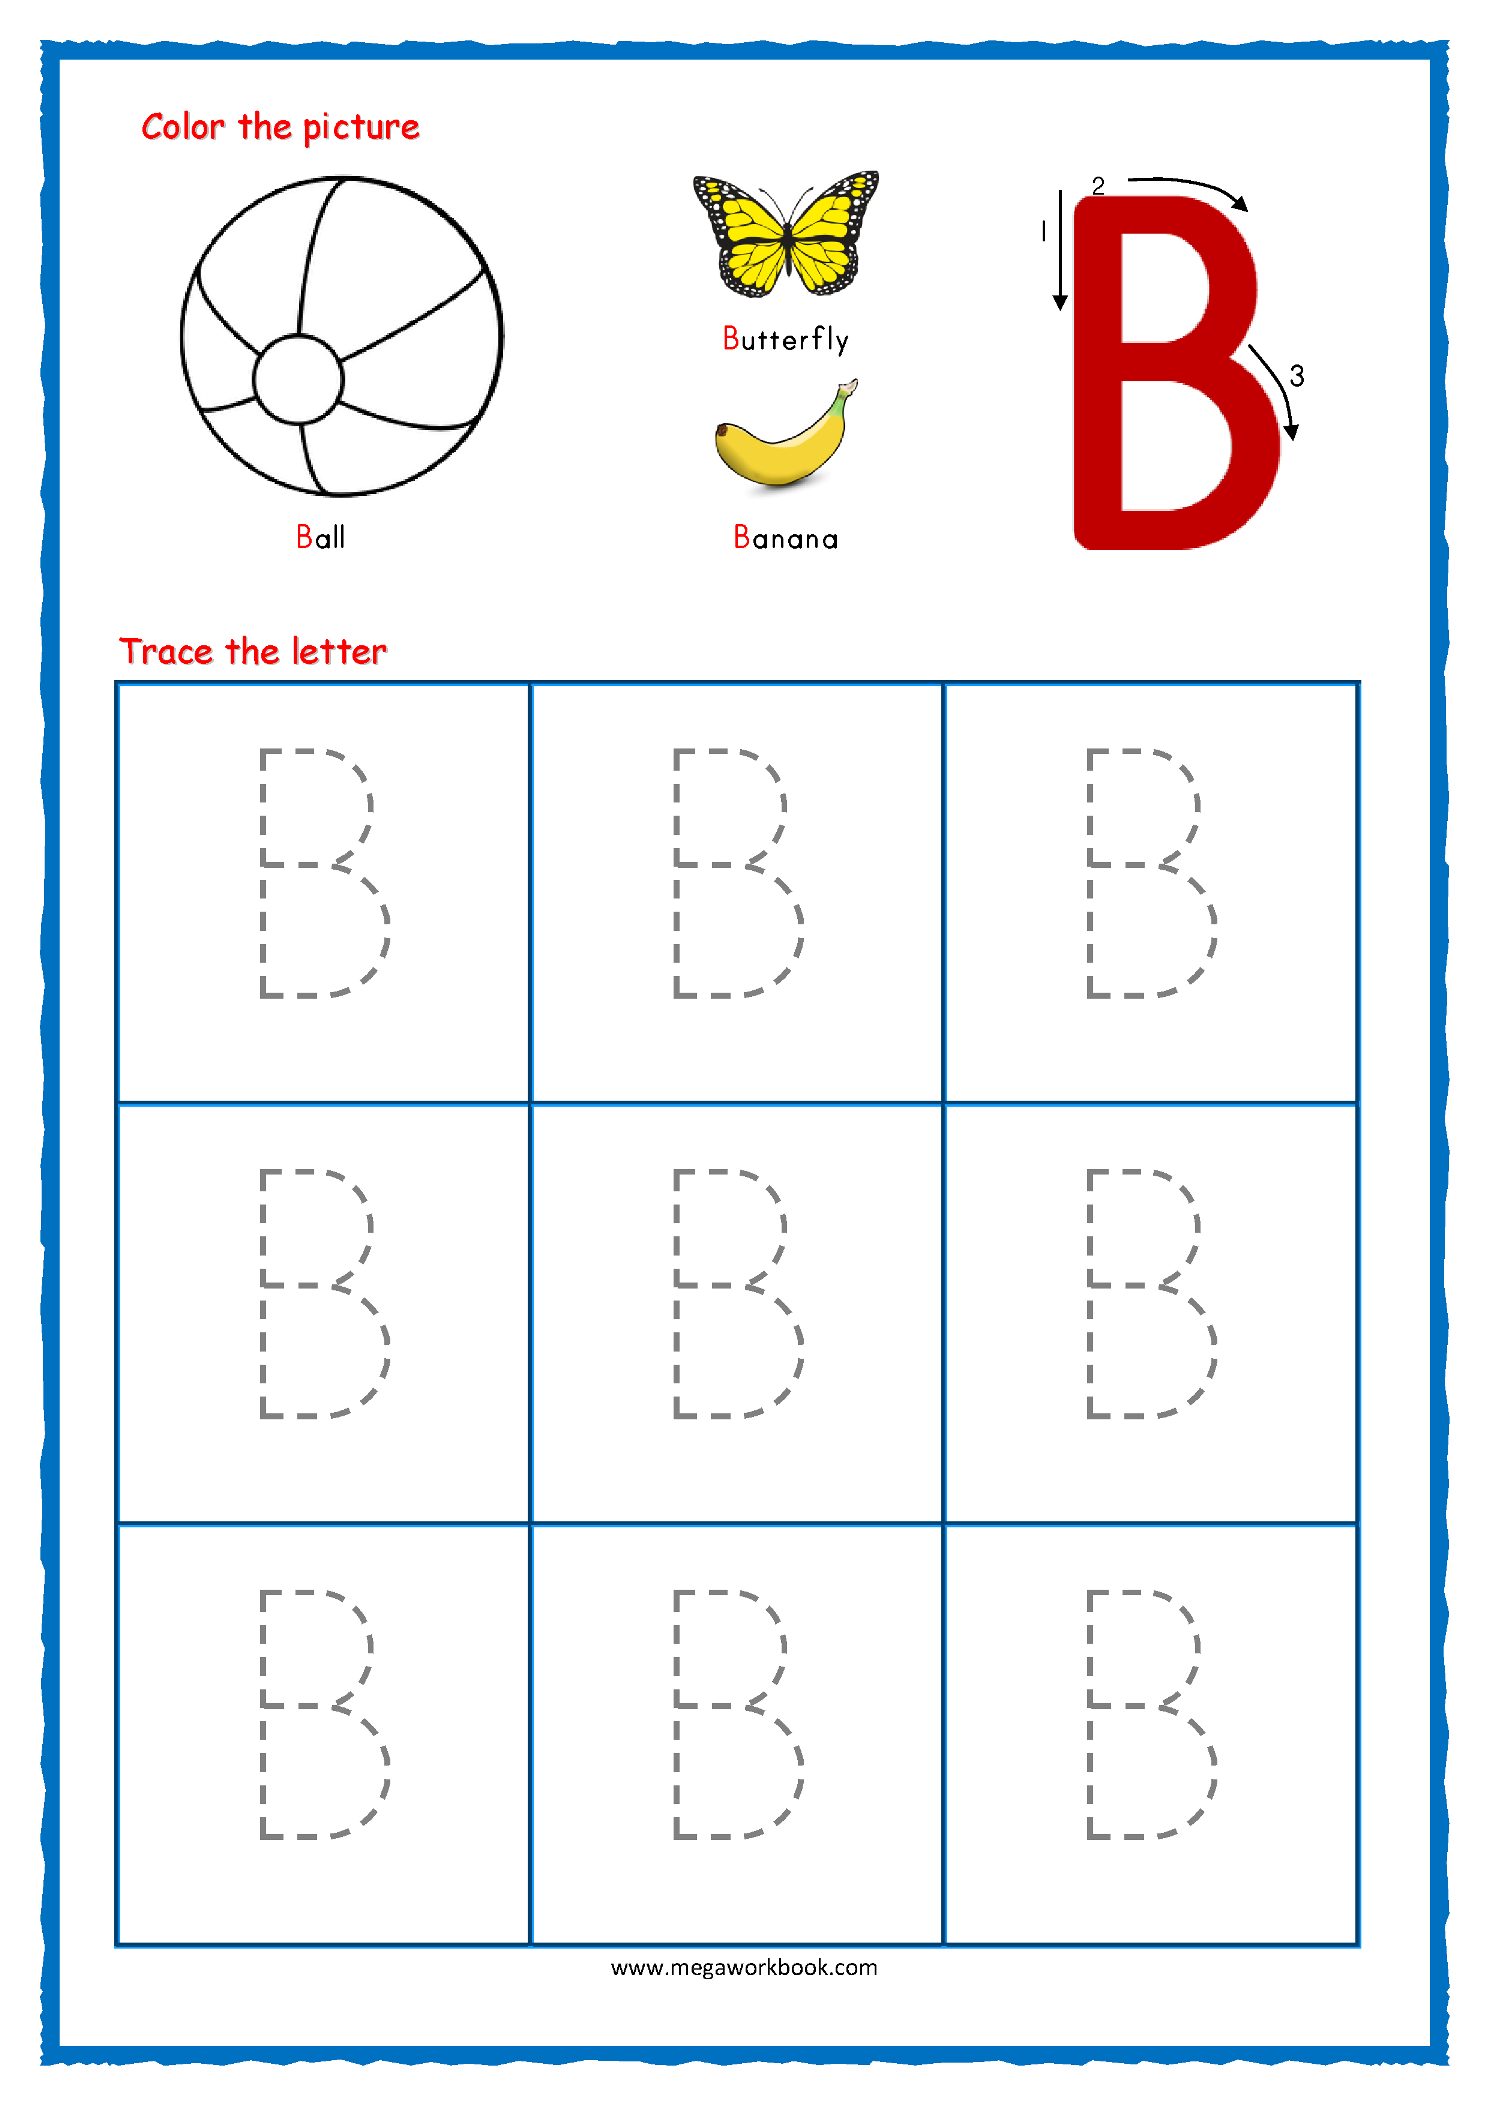 Coloring Book : Letter Tracingts Free Printable Coloring regarding Letter Tracing Worksheets For Preschoolers Free